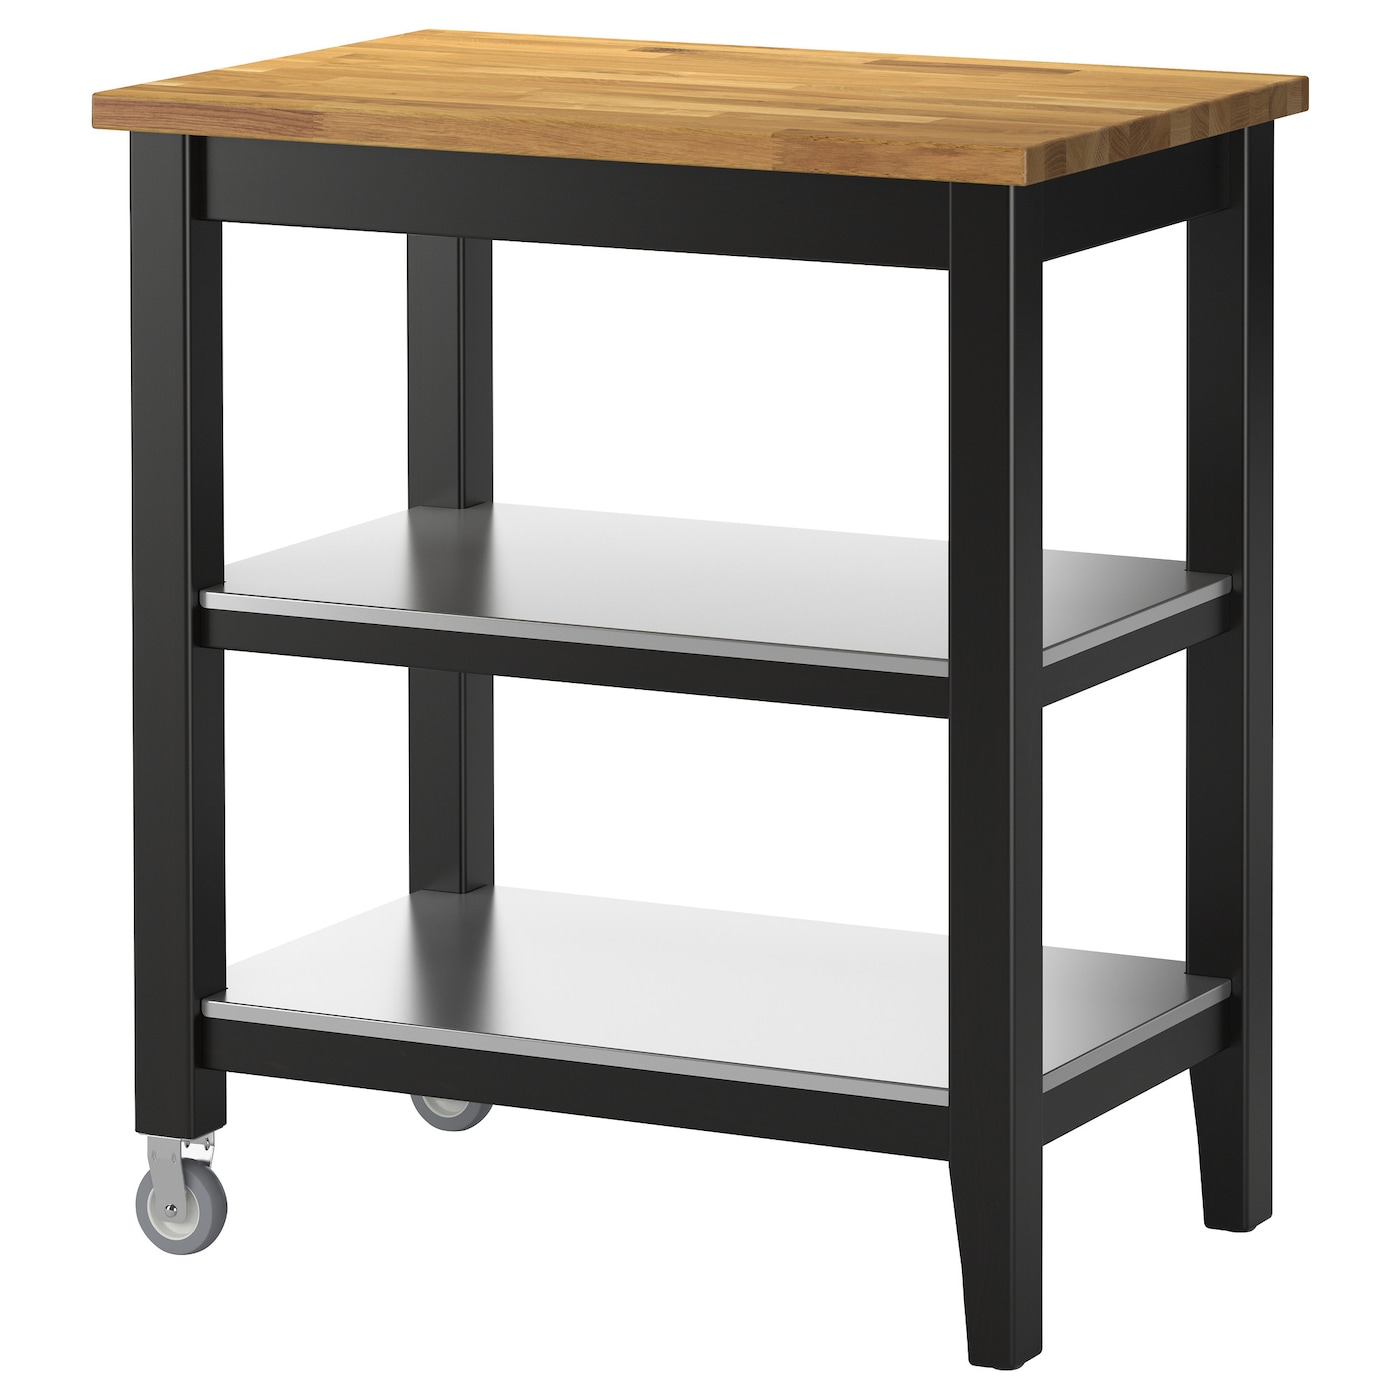 IKEA STENSTORP Kitchen Trolley Gives You Extra Storage In Your Kitchen.